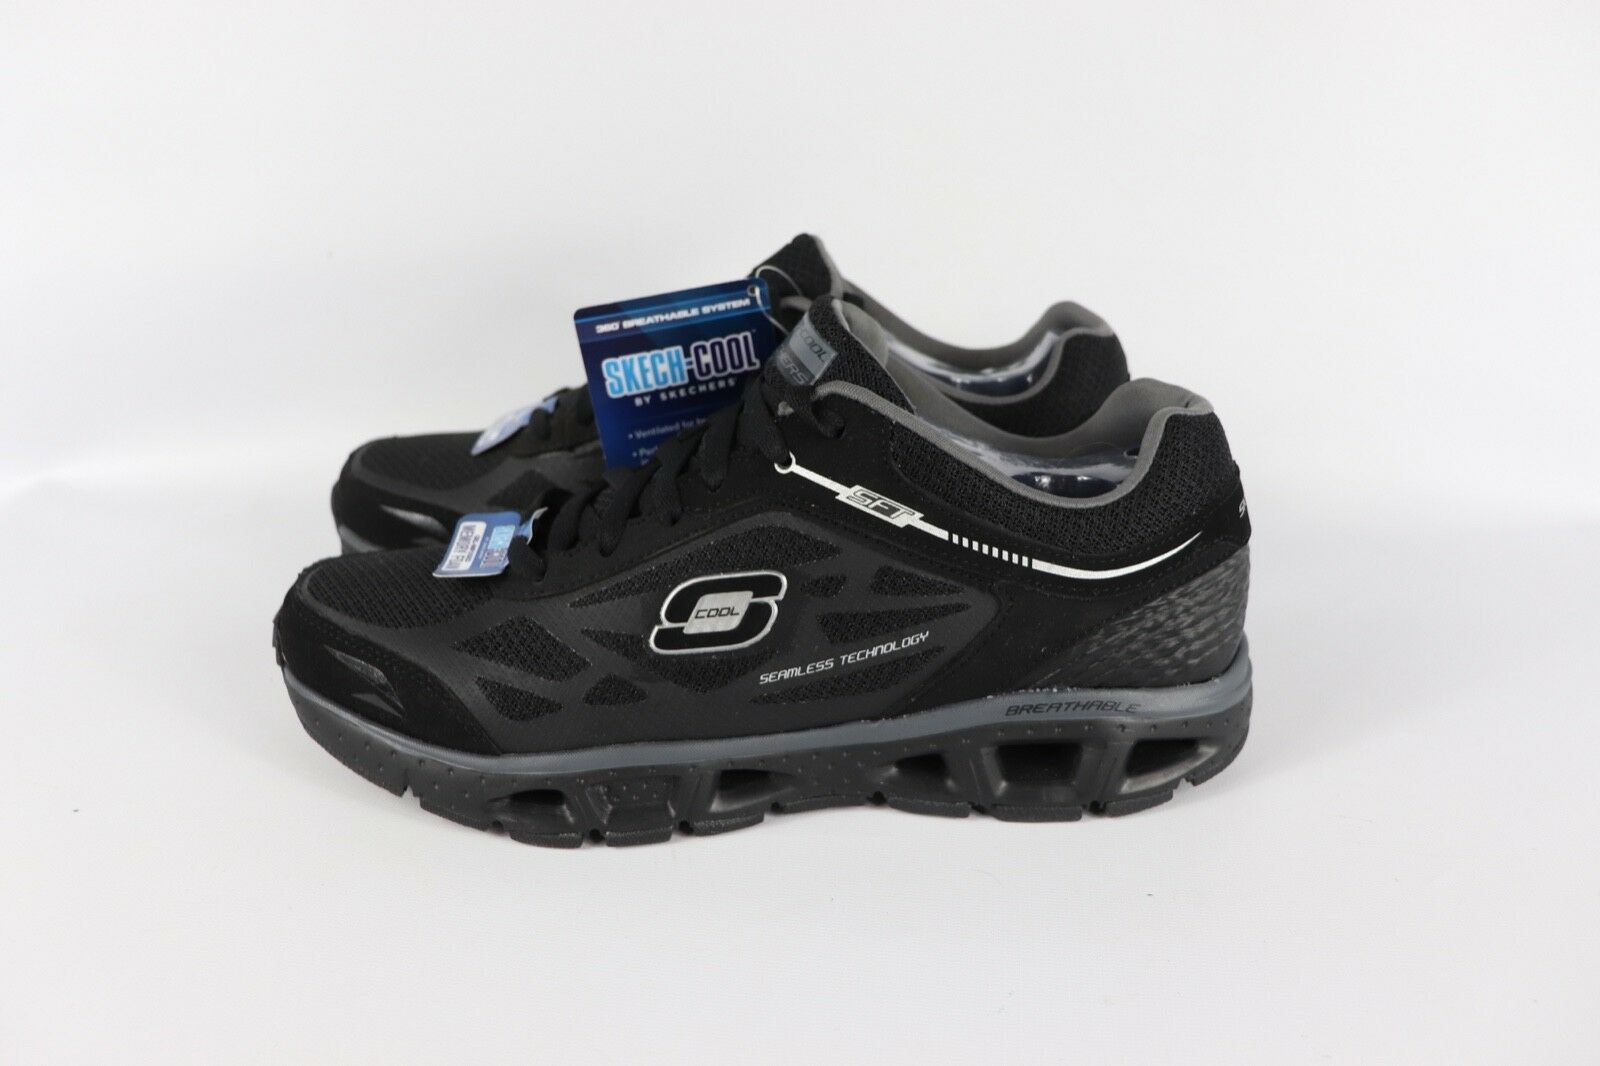 New Skechers Mens 10.5 Skech-Cool Chill Athletic Running Sneakers Shoes Black